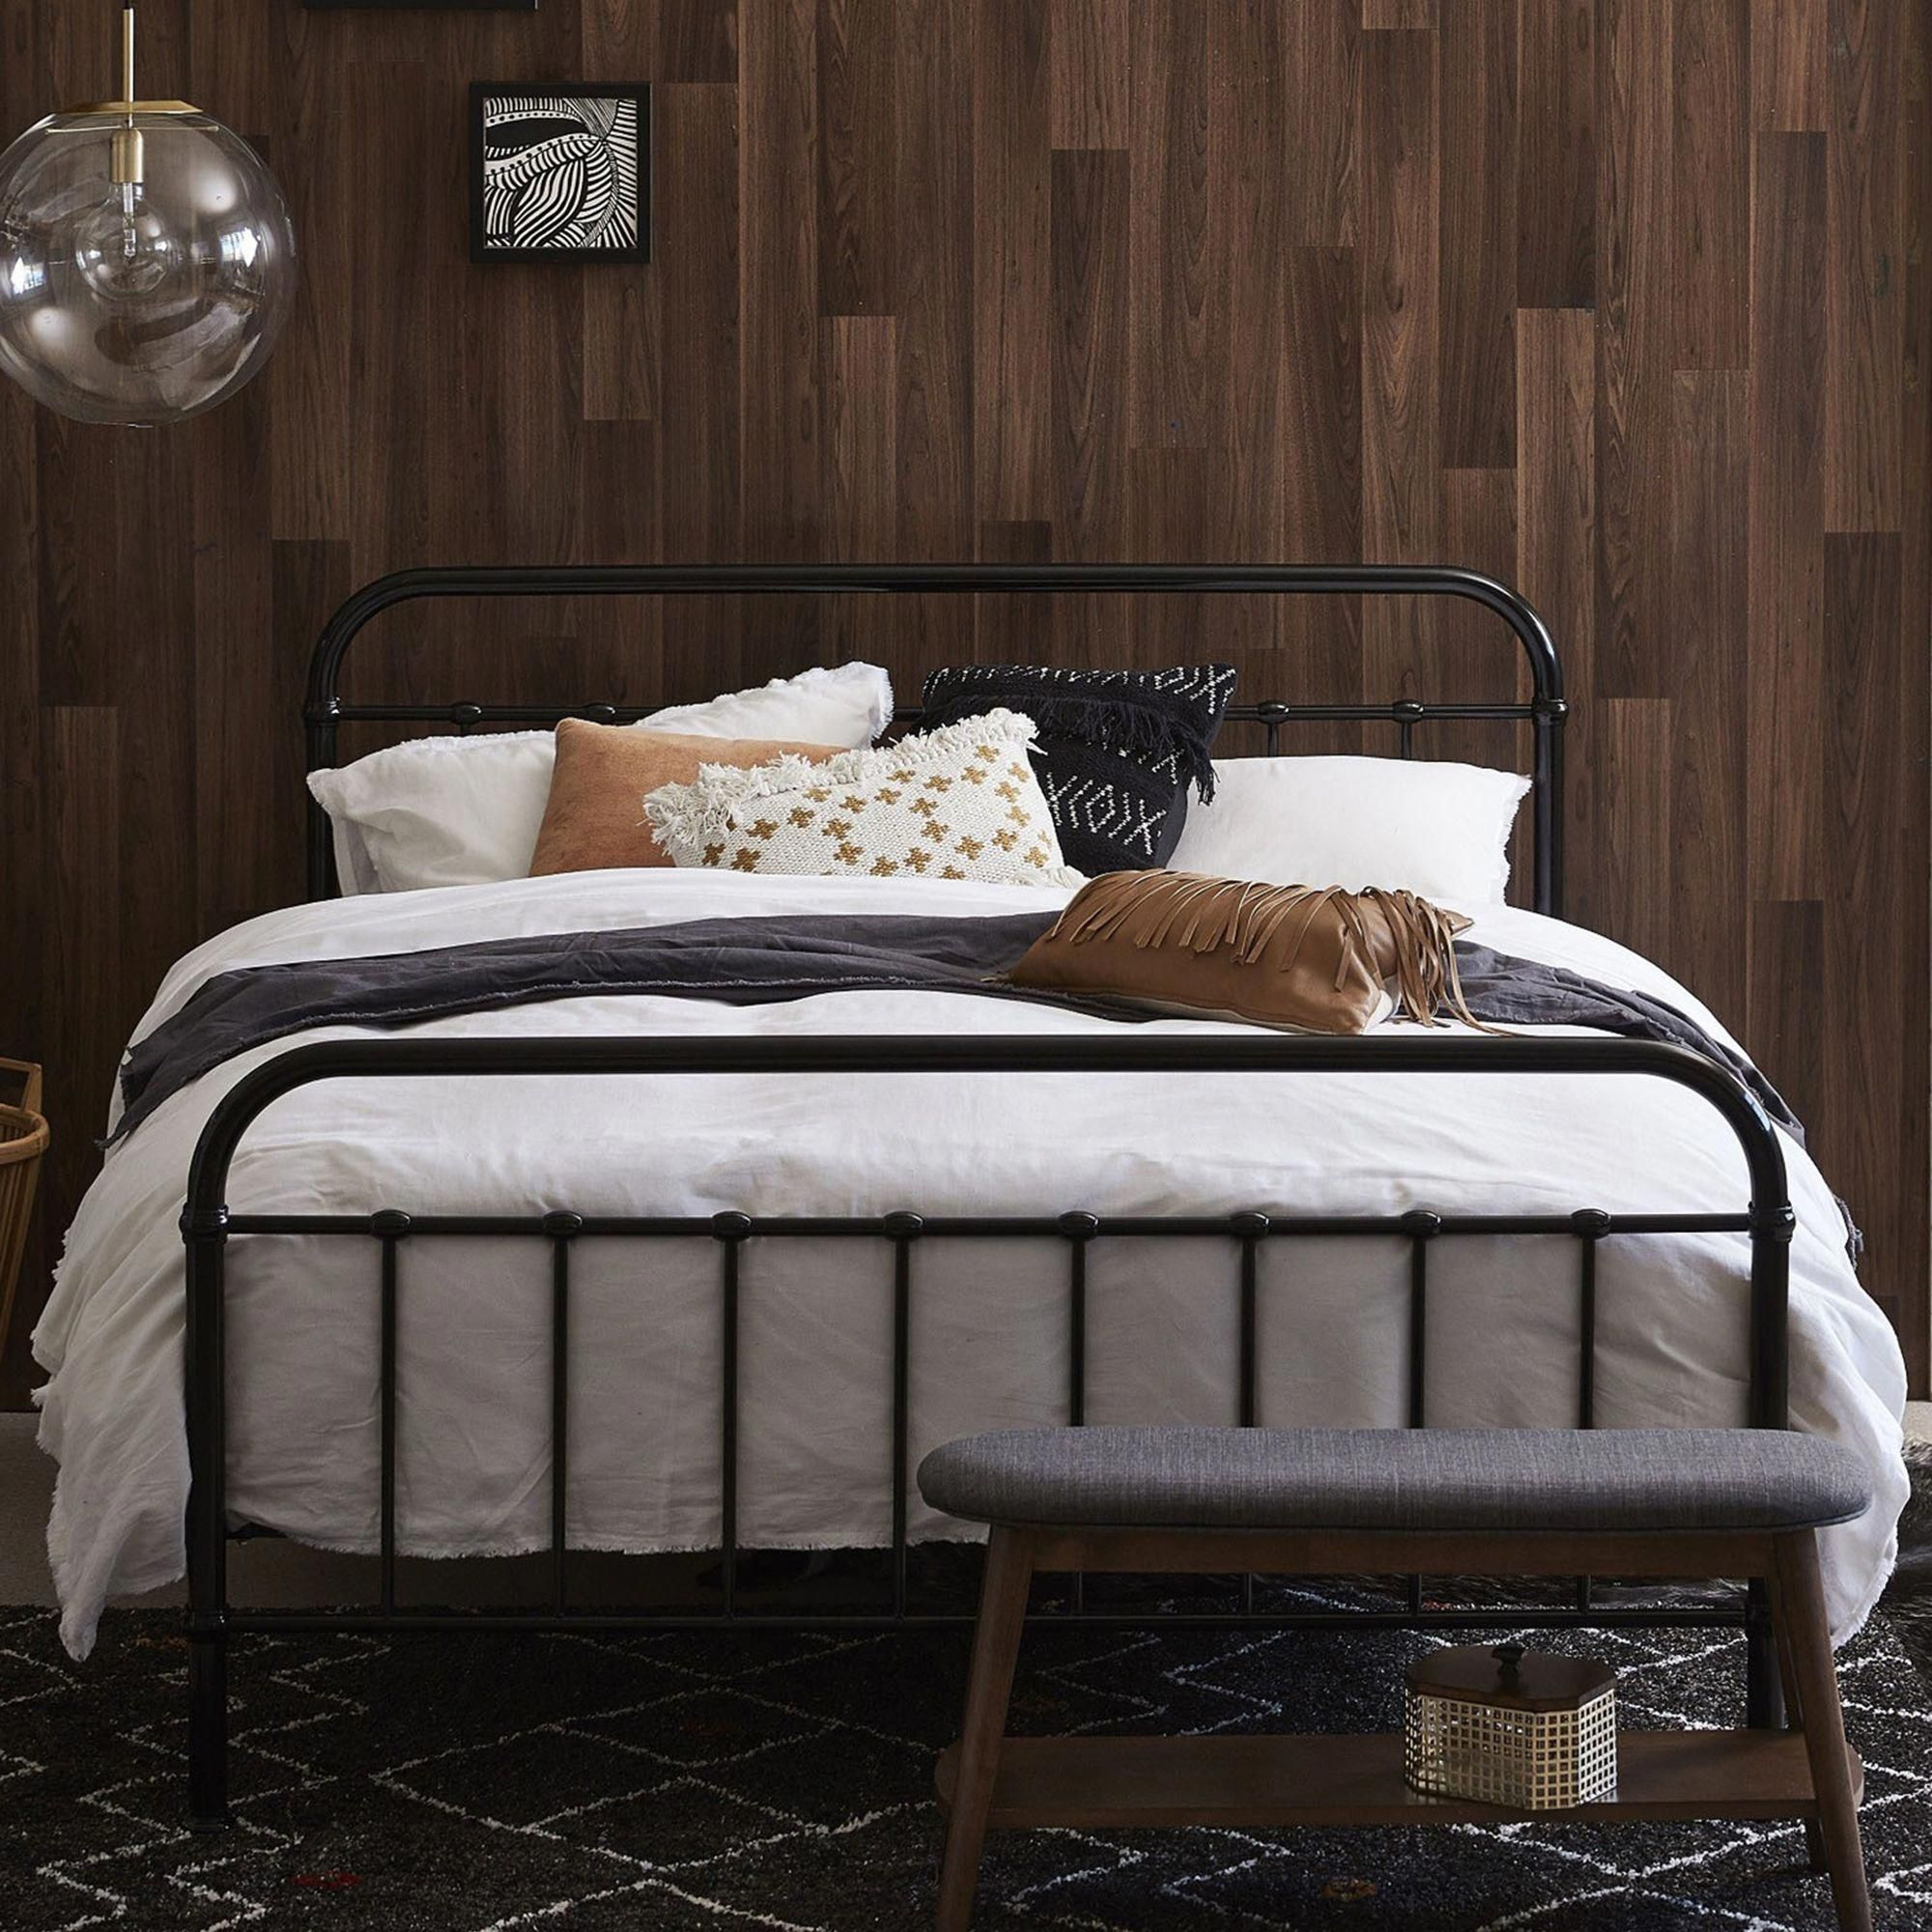 17 Fabulous Bed Frame King With Storage Bed Frames High Off The